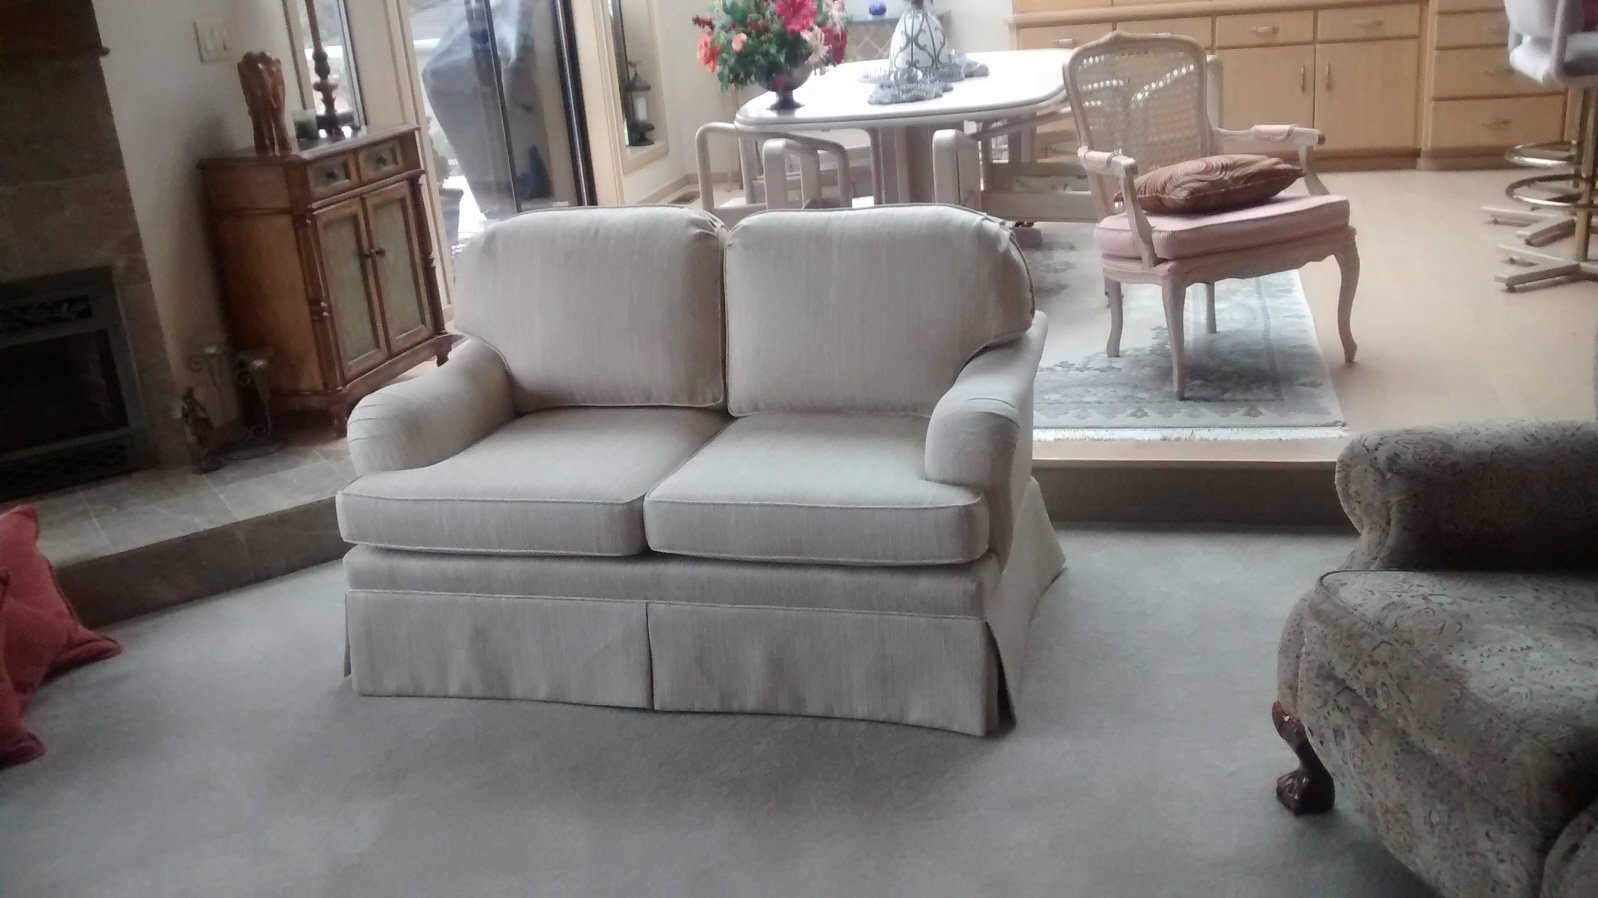 Designer 39 s choice upholstery in everett wa 98204 for Furniture in everett wa